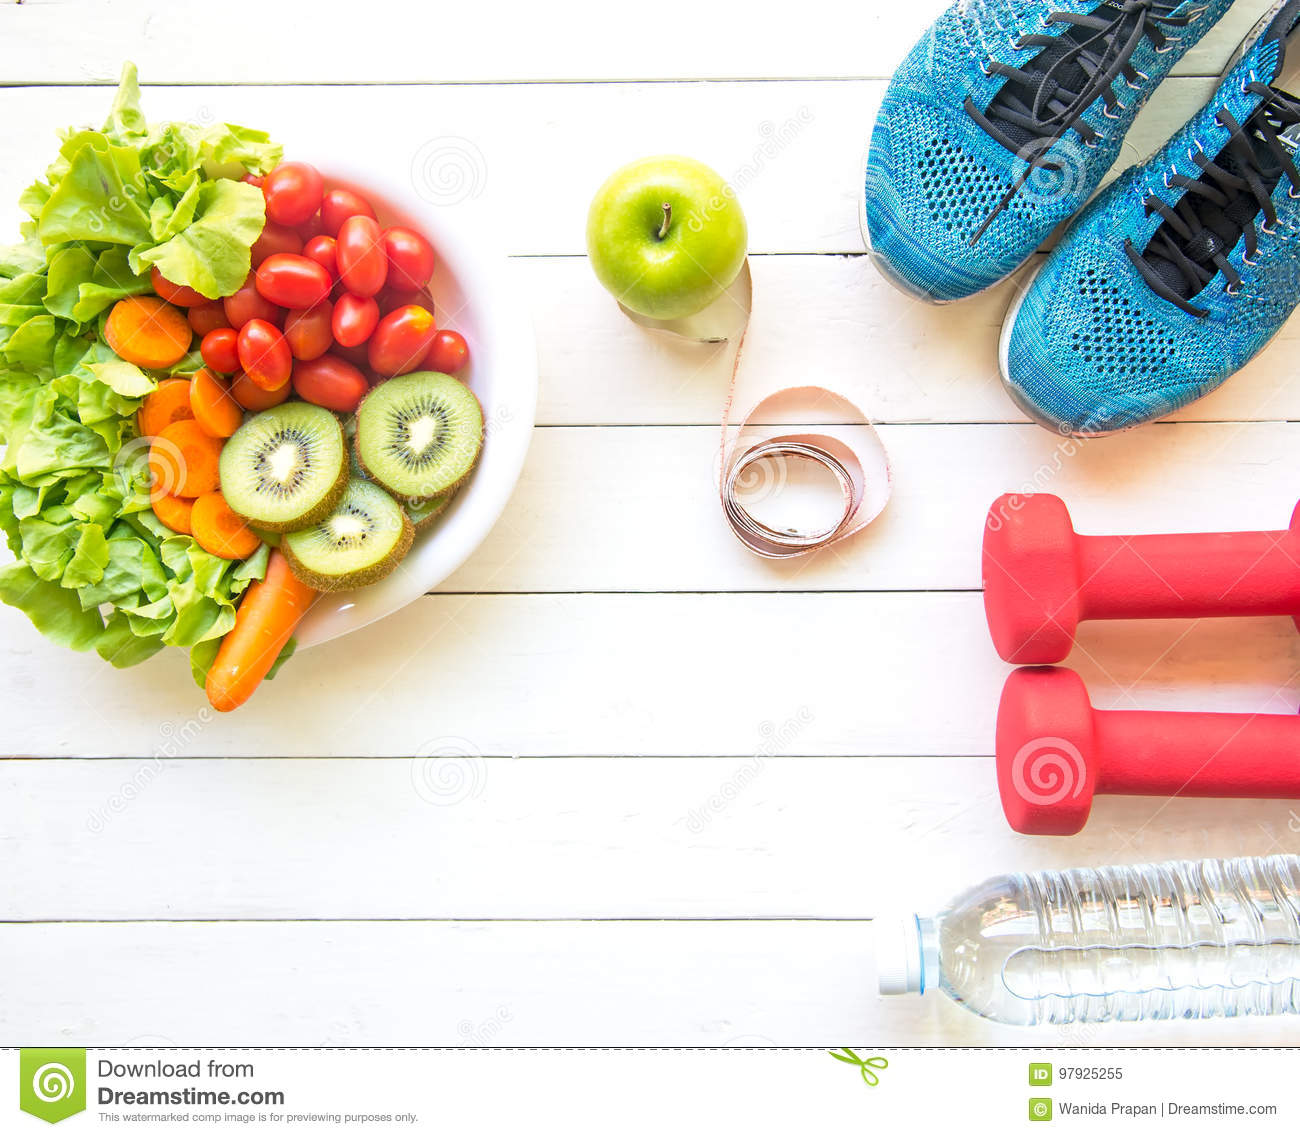 Download Healthy Lifestyle For Women Diet With Sport Equipment, Sneakers, Measuring Tape, Vegetable Fresh, Green Apples And Bottle Of Water Stock Image - Image of kivi, background: 97925255